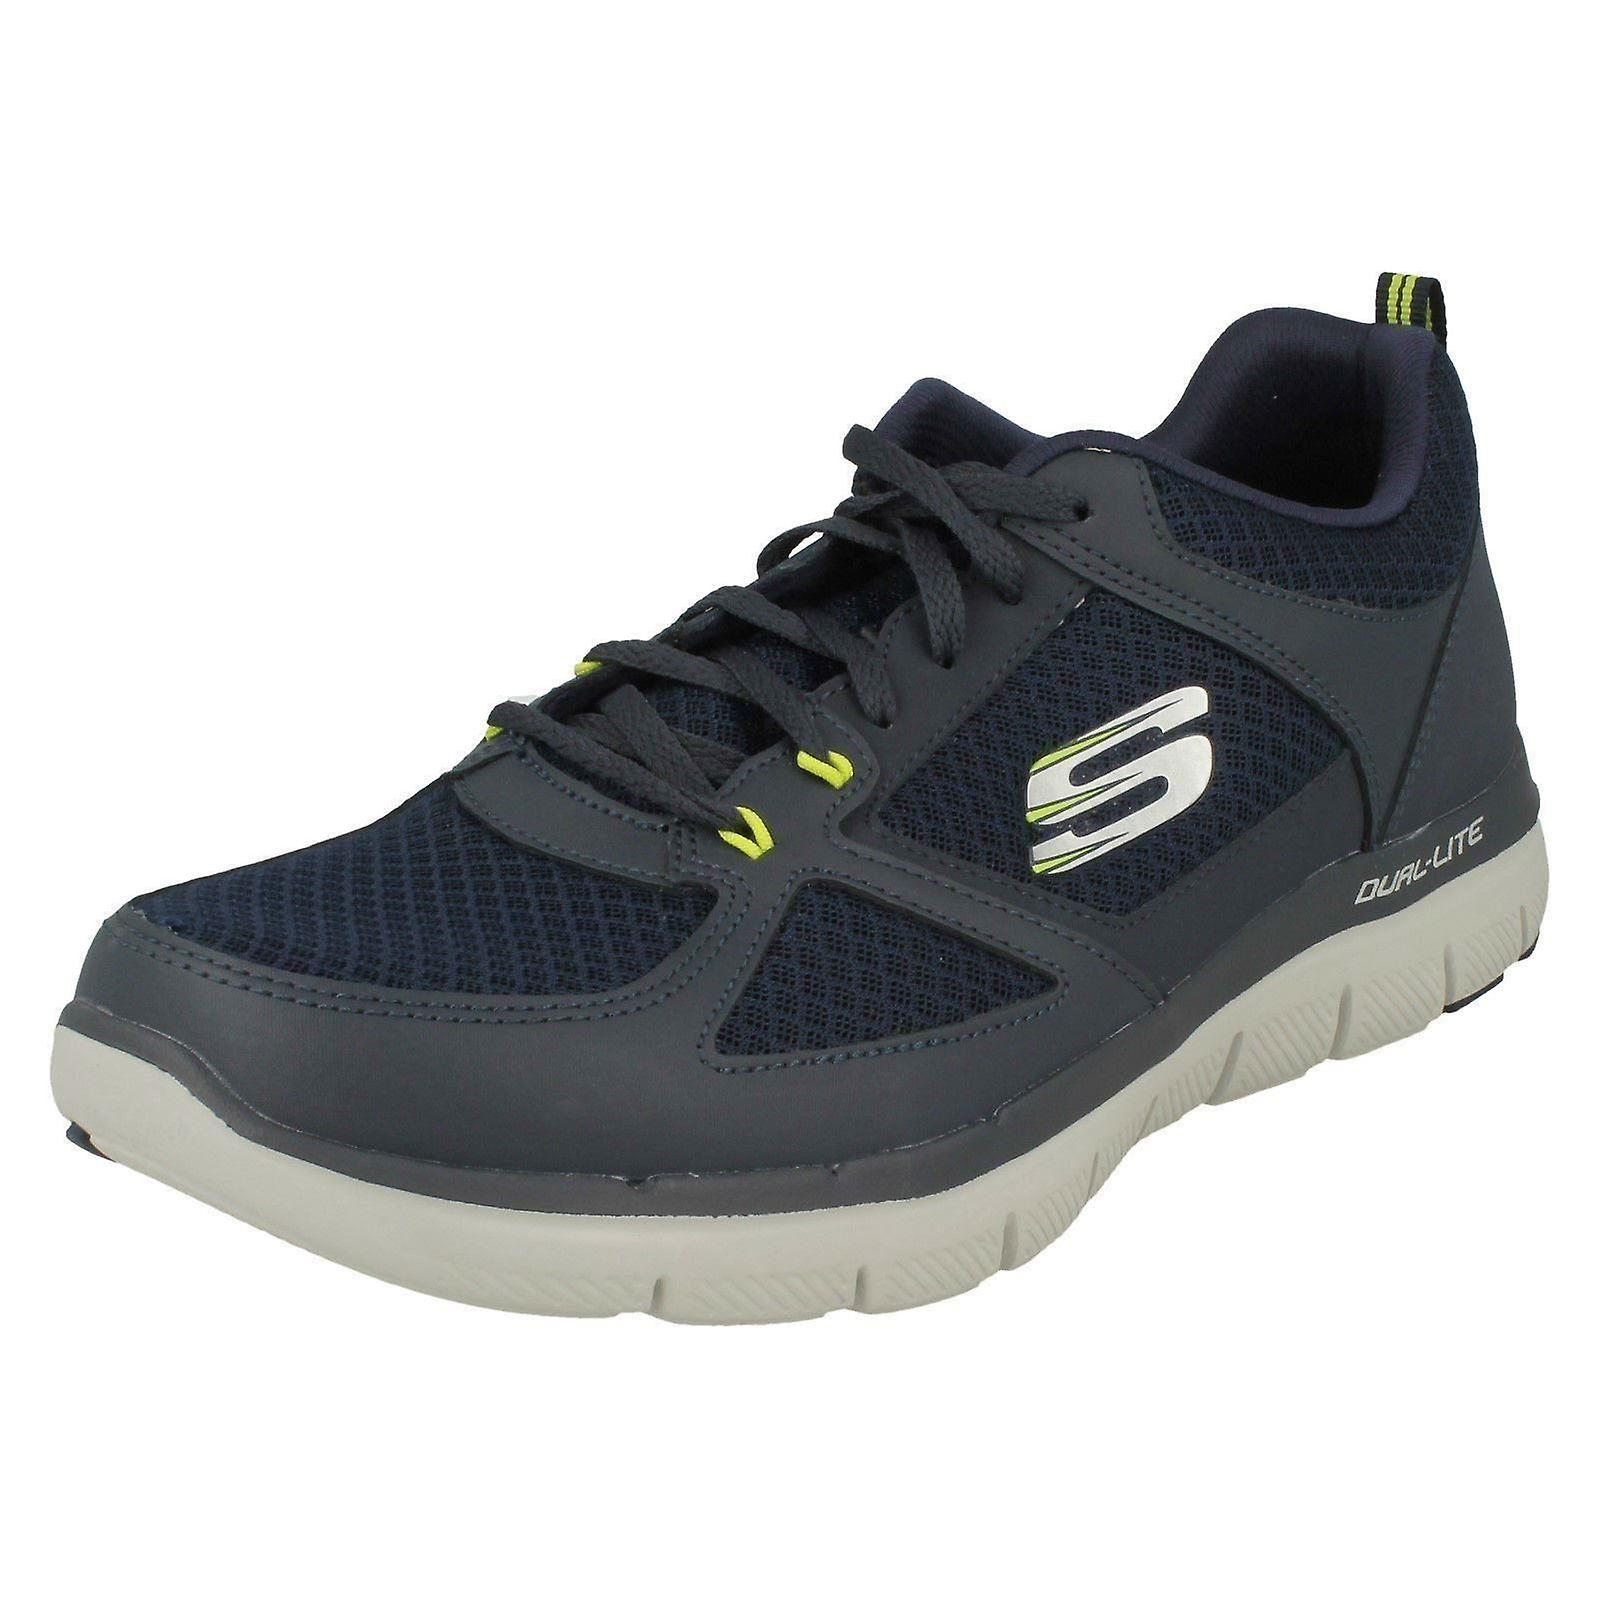 13 12 Leather EU UK Lindman Skechers Size Lime 5 Trainers US Size 52189 Mens 47 Navy Casual Size vTUxwqR